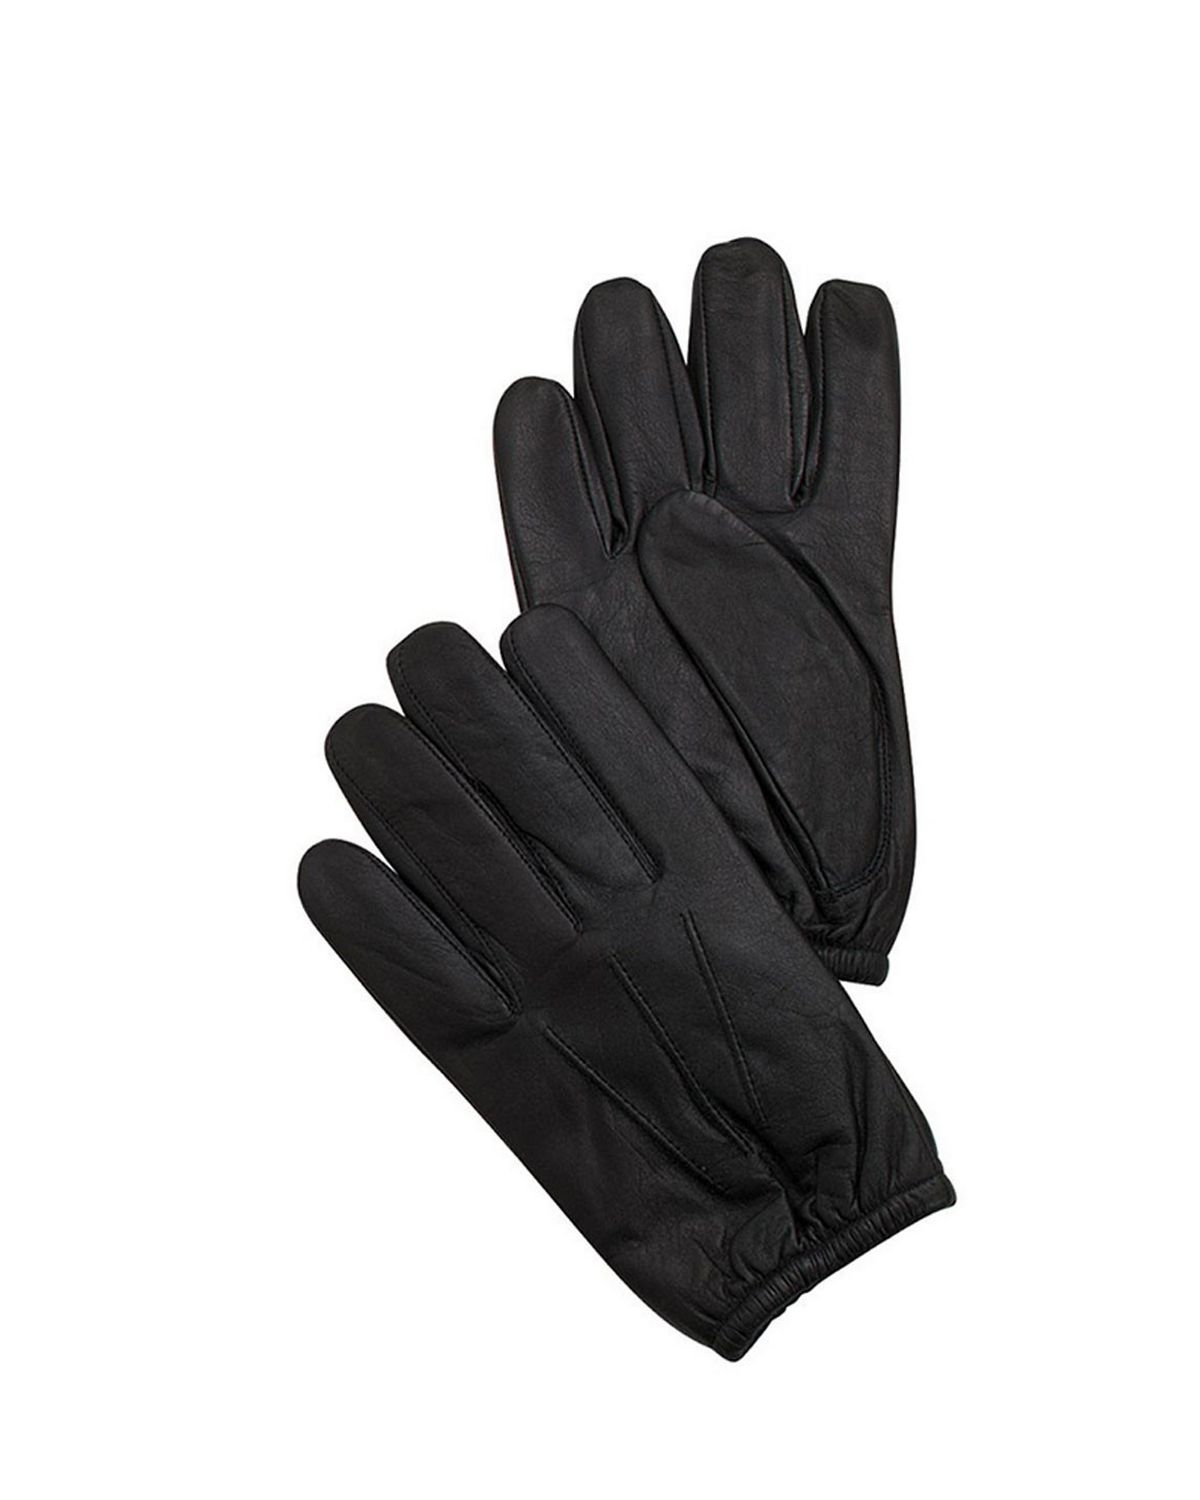 Rothco 3452 Lined Gloves - Black - L 3452